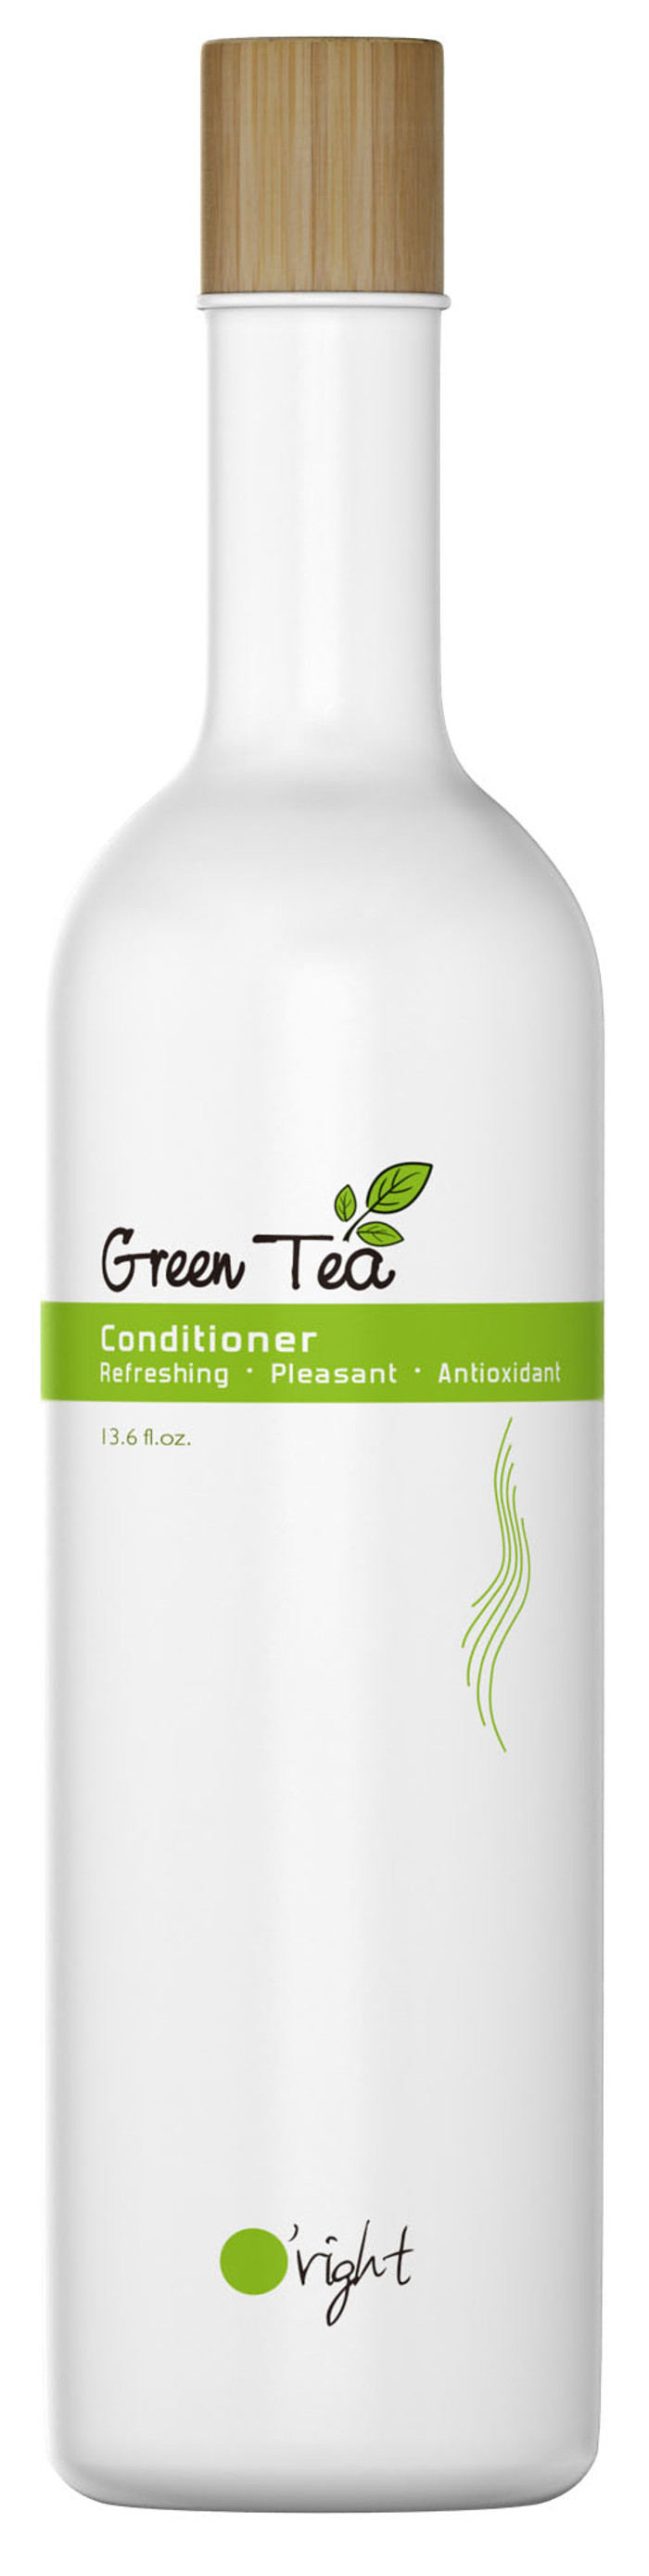 Green Tea Conditioner 400ml